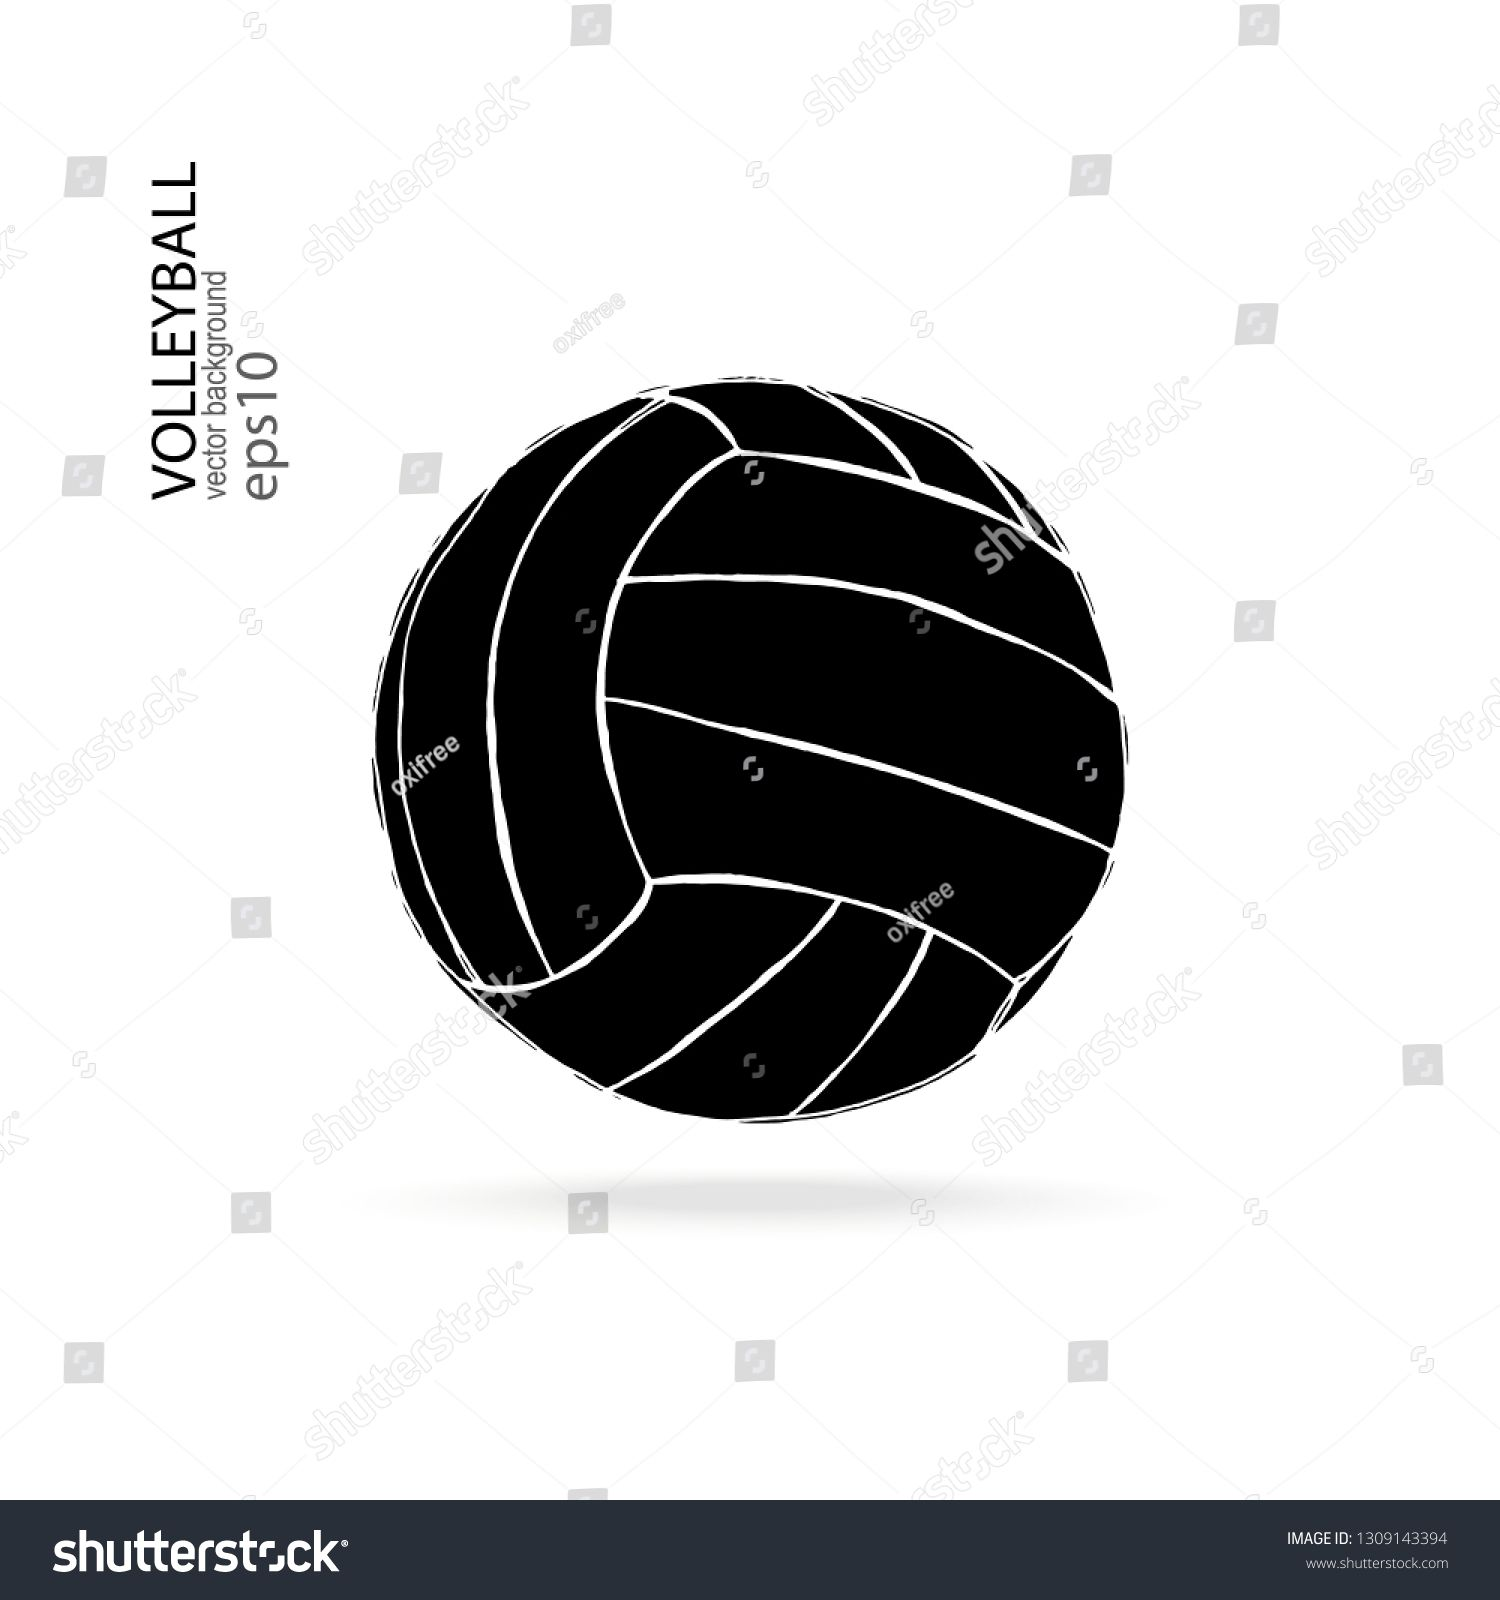 Vector Black Volleyball Ball Isolated On White Background Vector Element For Sports Design Print On T Shirt Ad Affi Tshirt Print Artwork Abstract Design